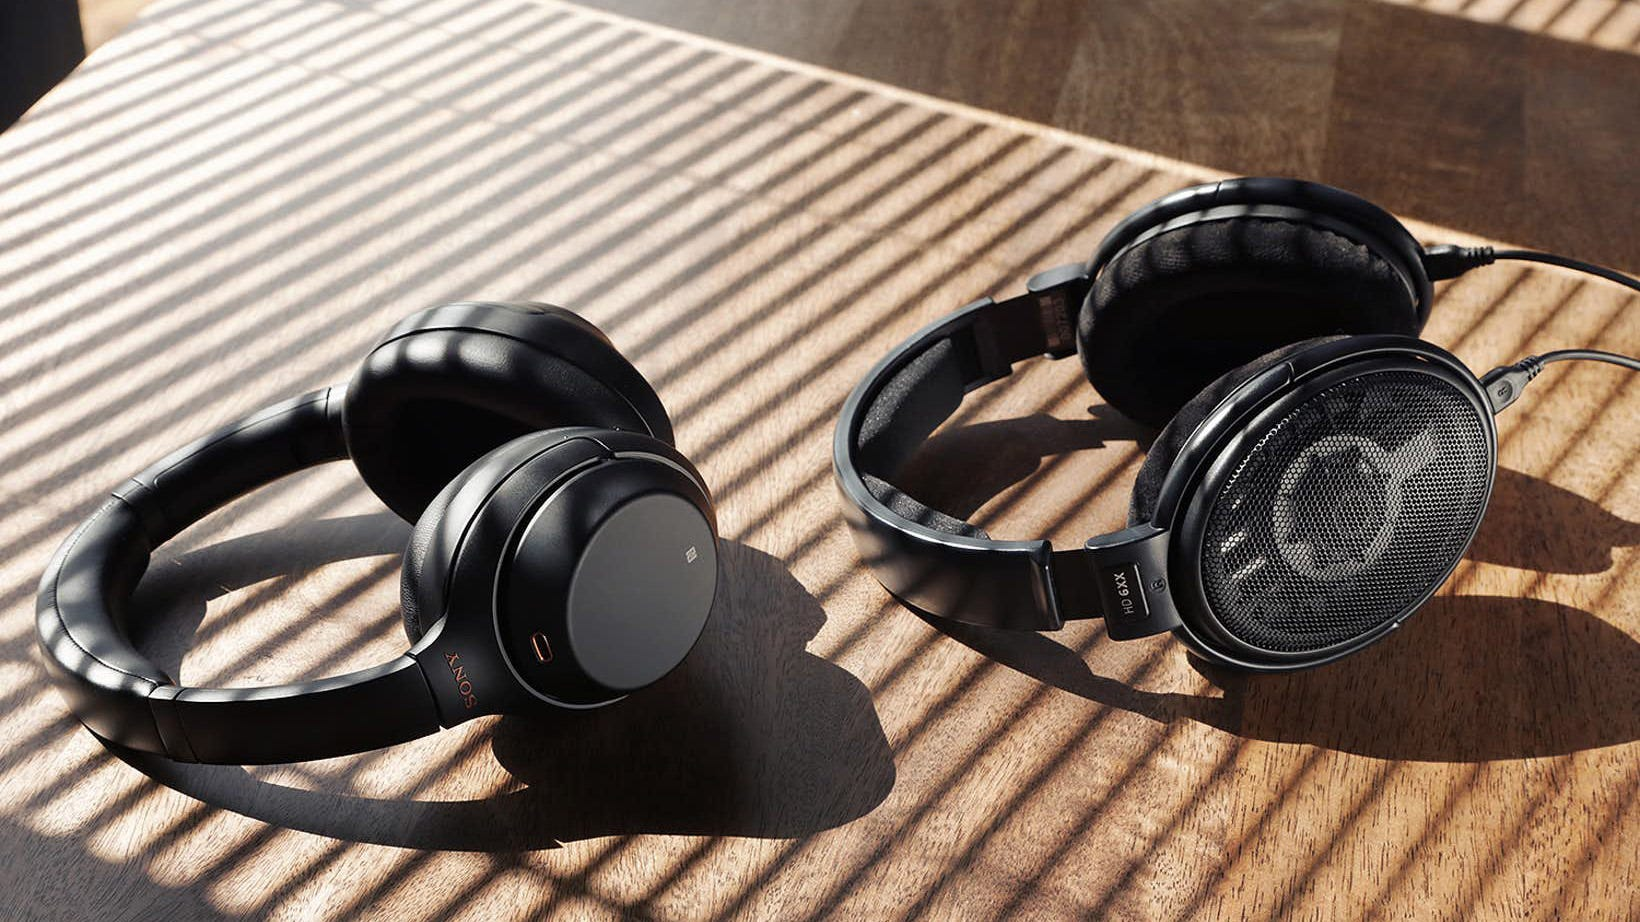 This Sony and Sennheiser headphone bundle deal on Drop will change the way you listen to music